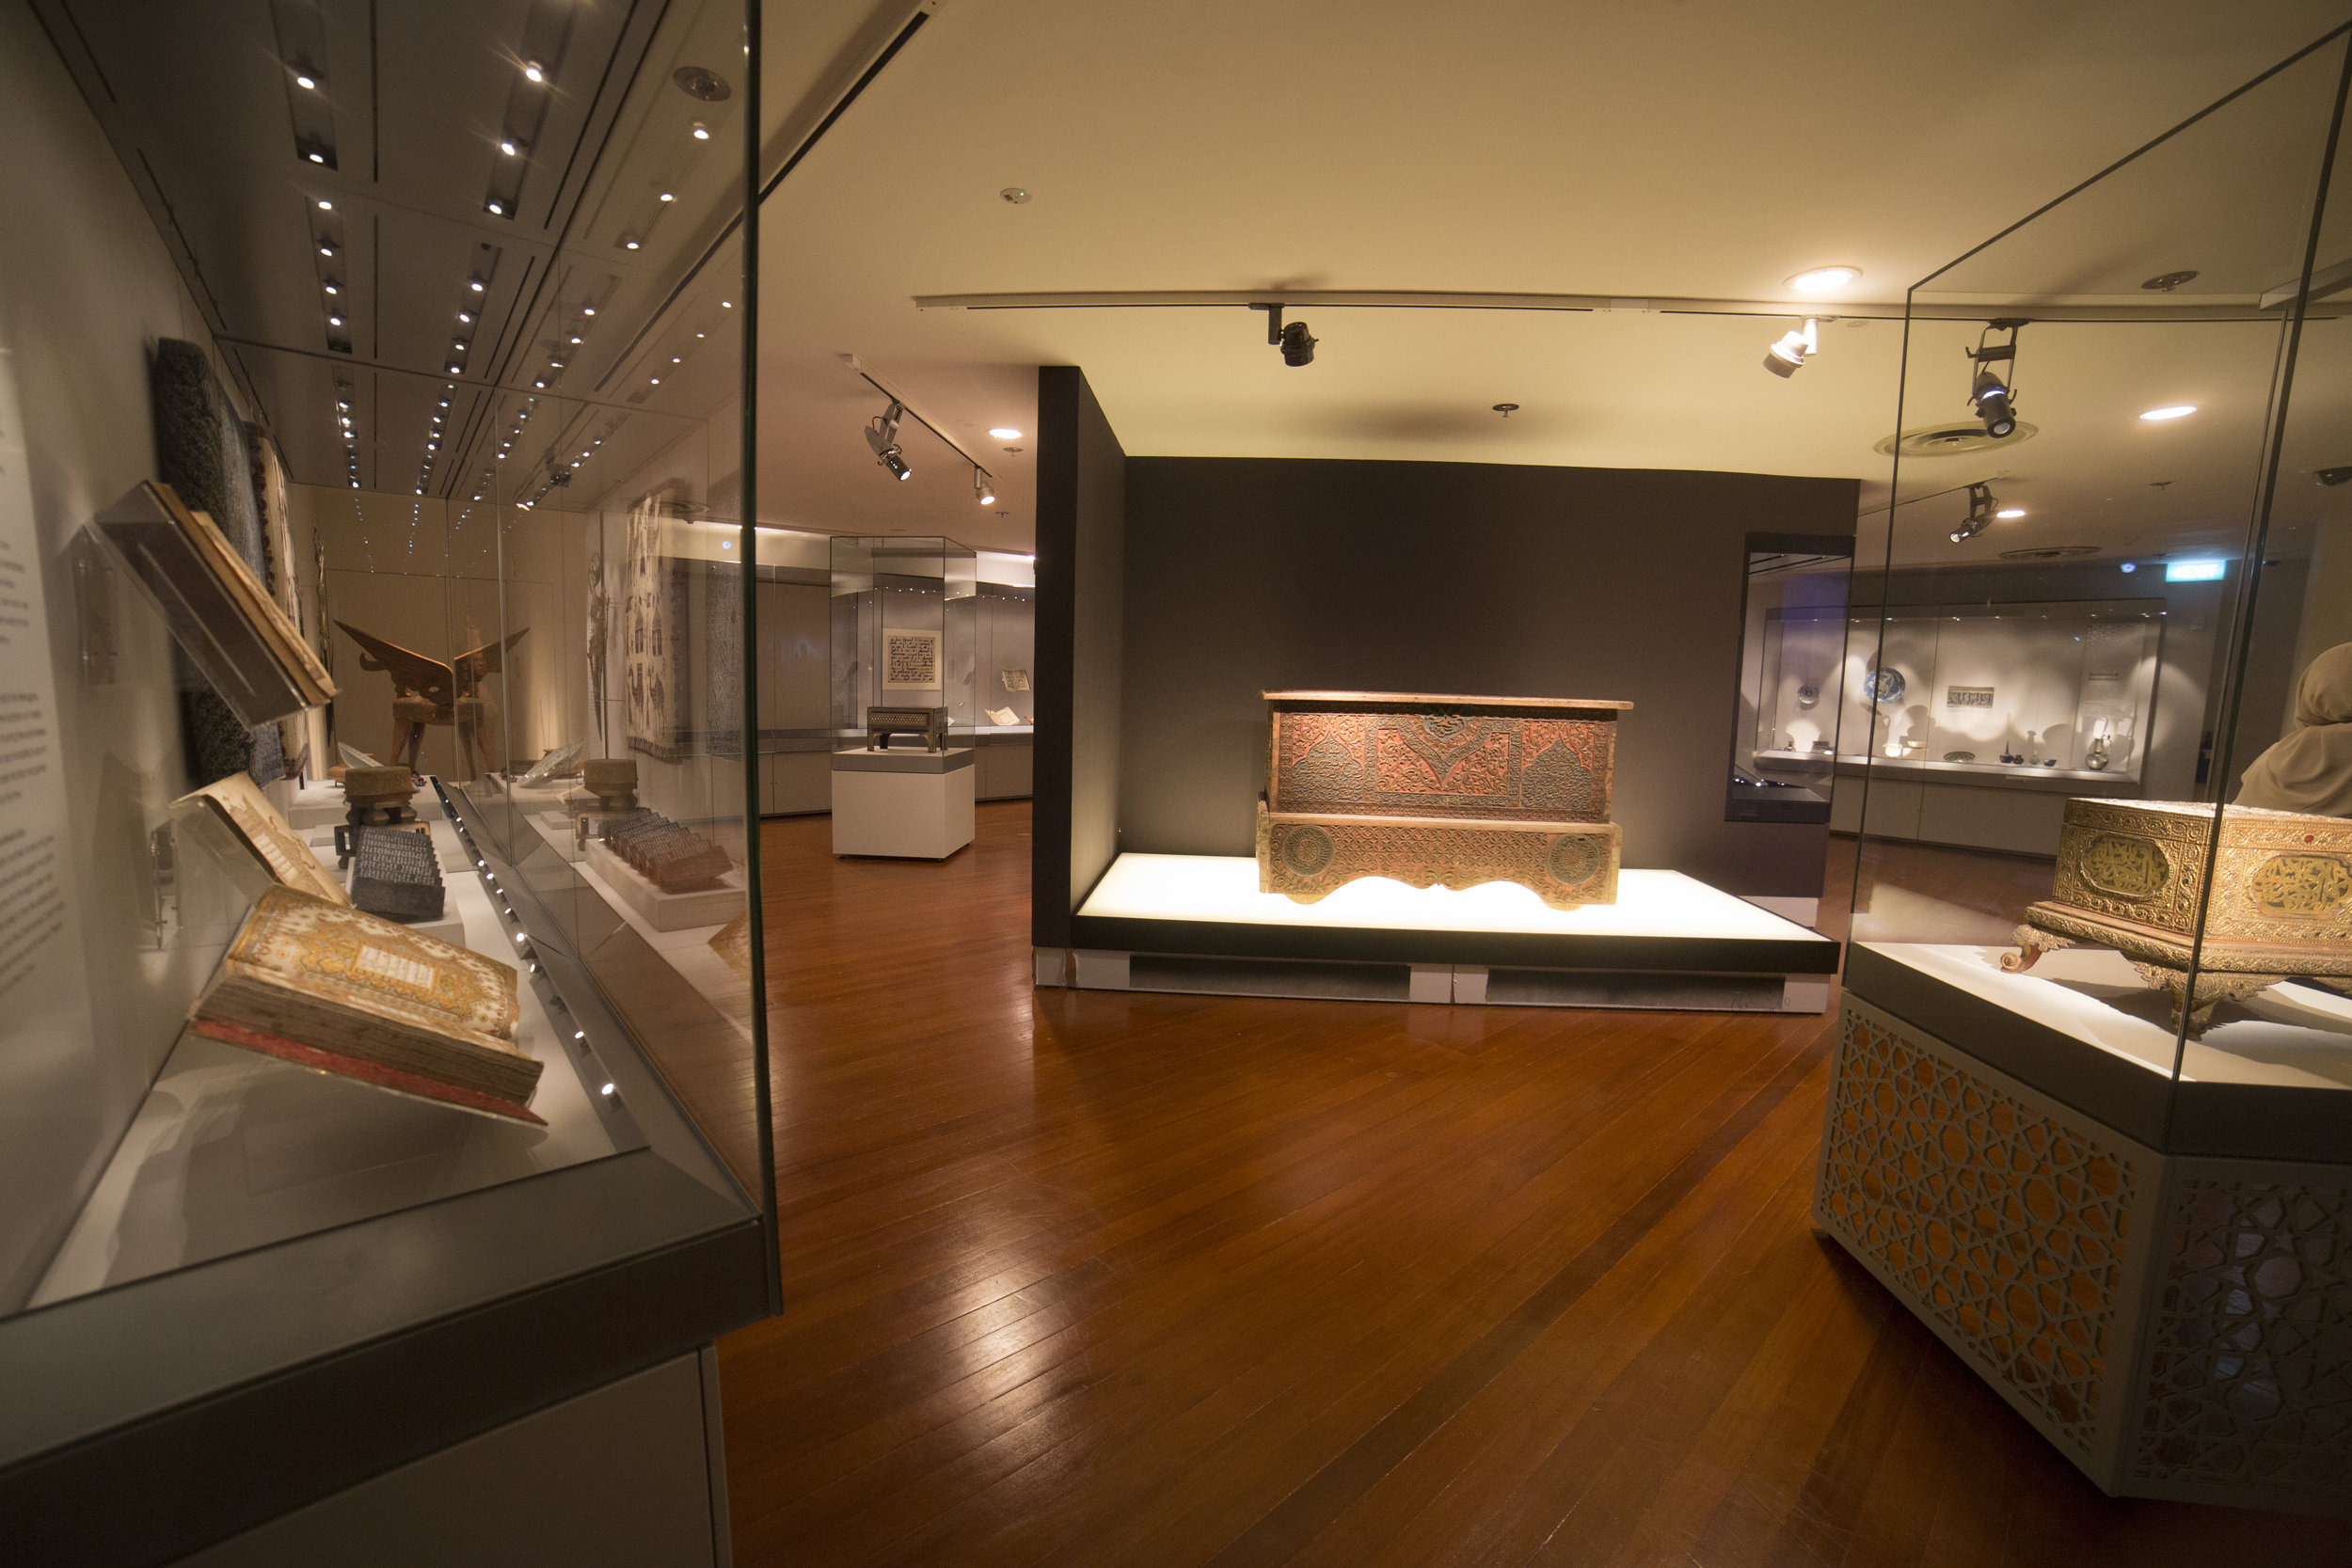 Islamic Art Gallery Installation View at Asian Civilisations Museum  Photography by Asian Civilisations Museum